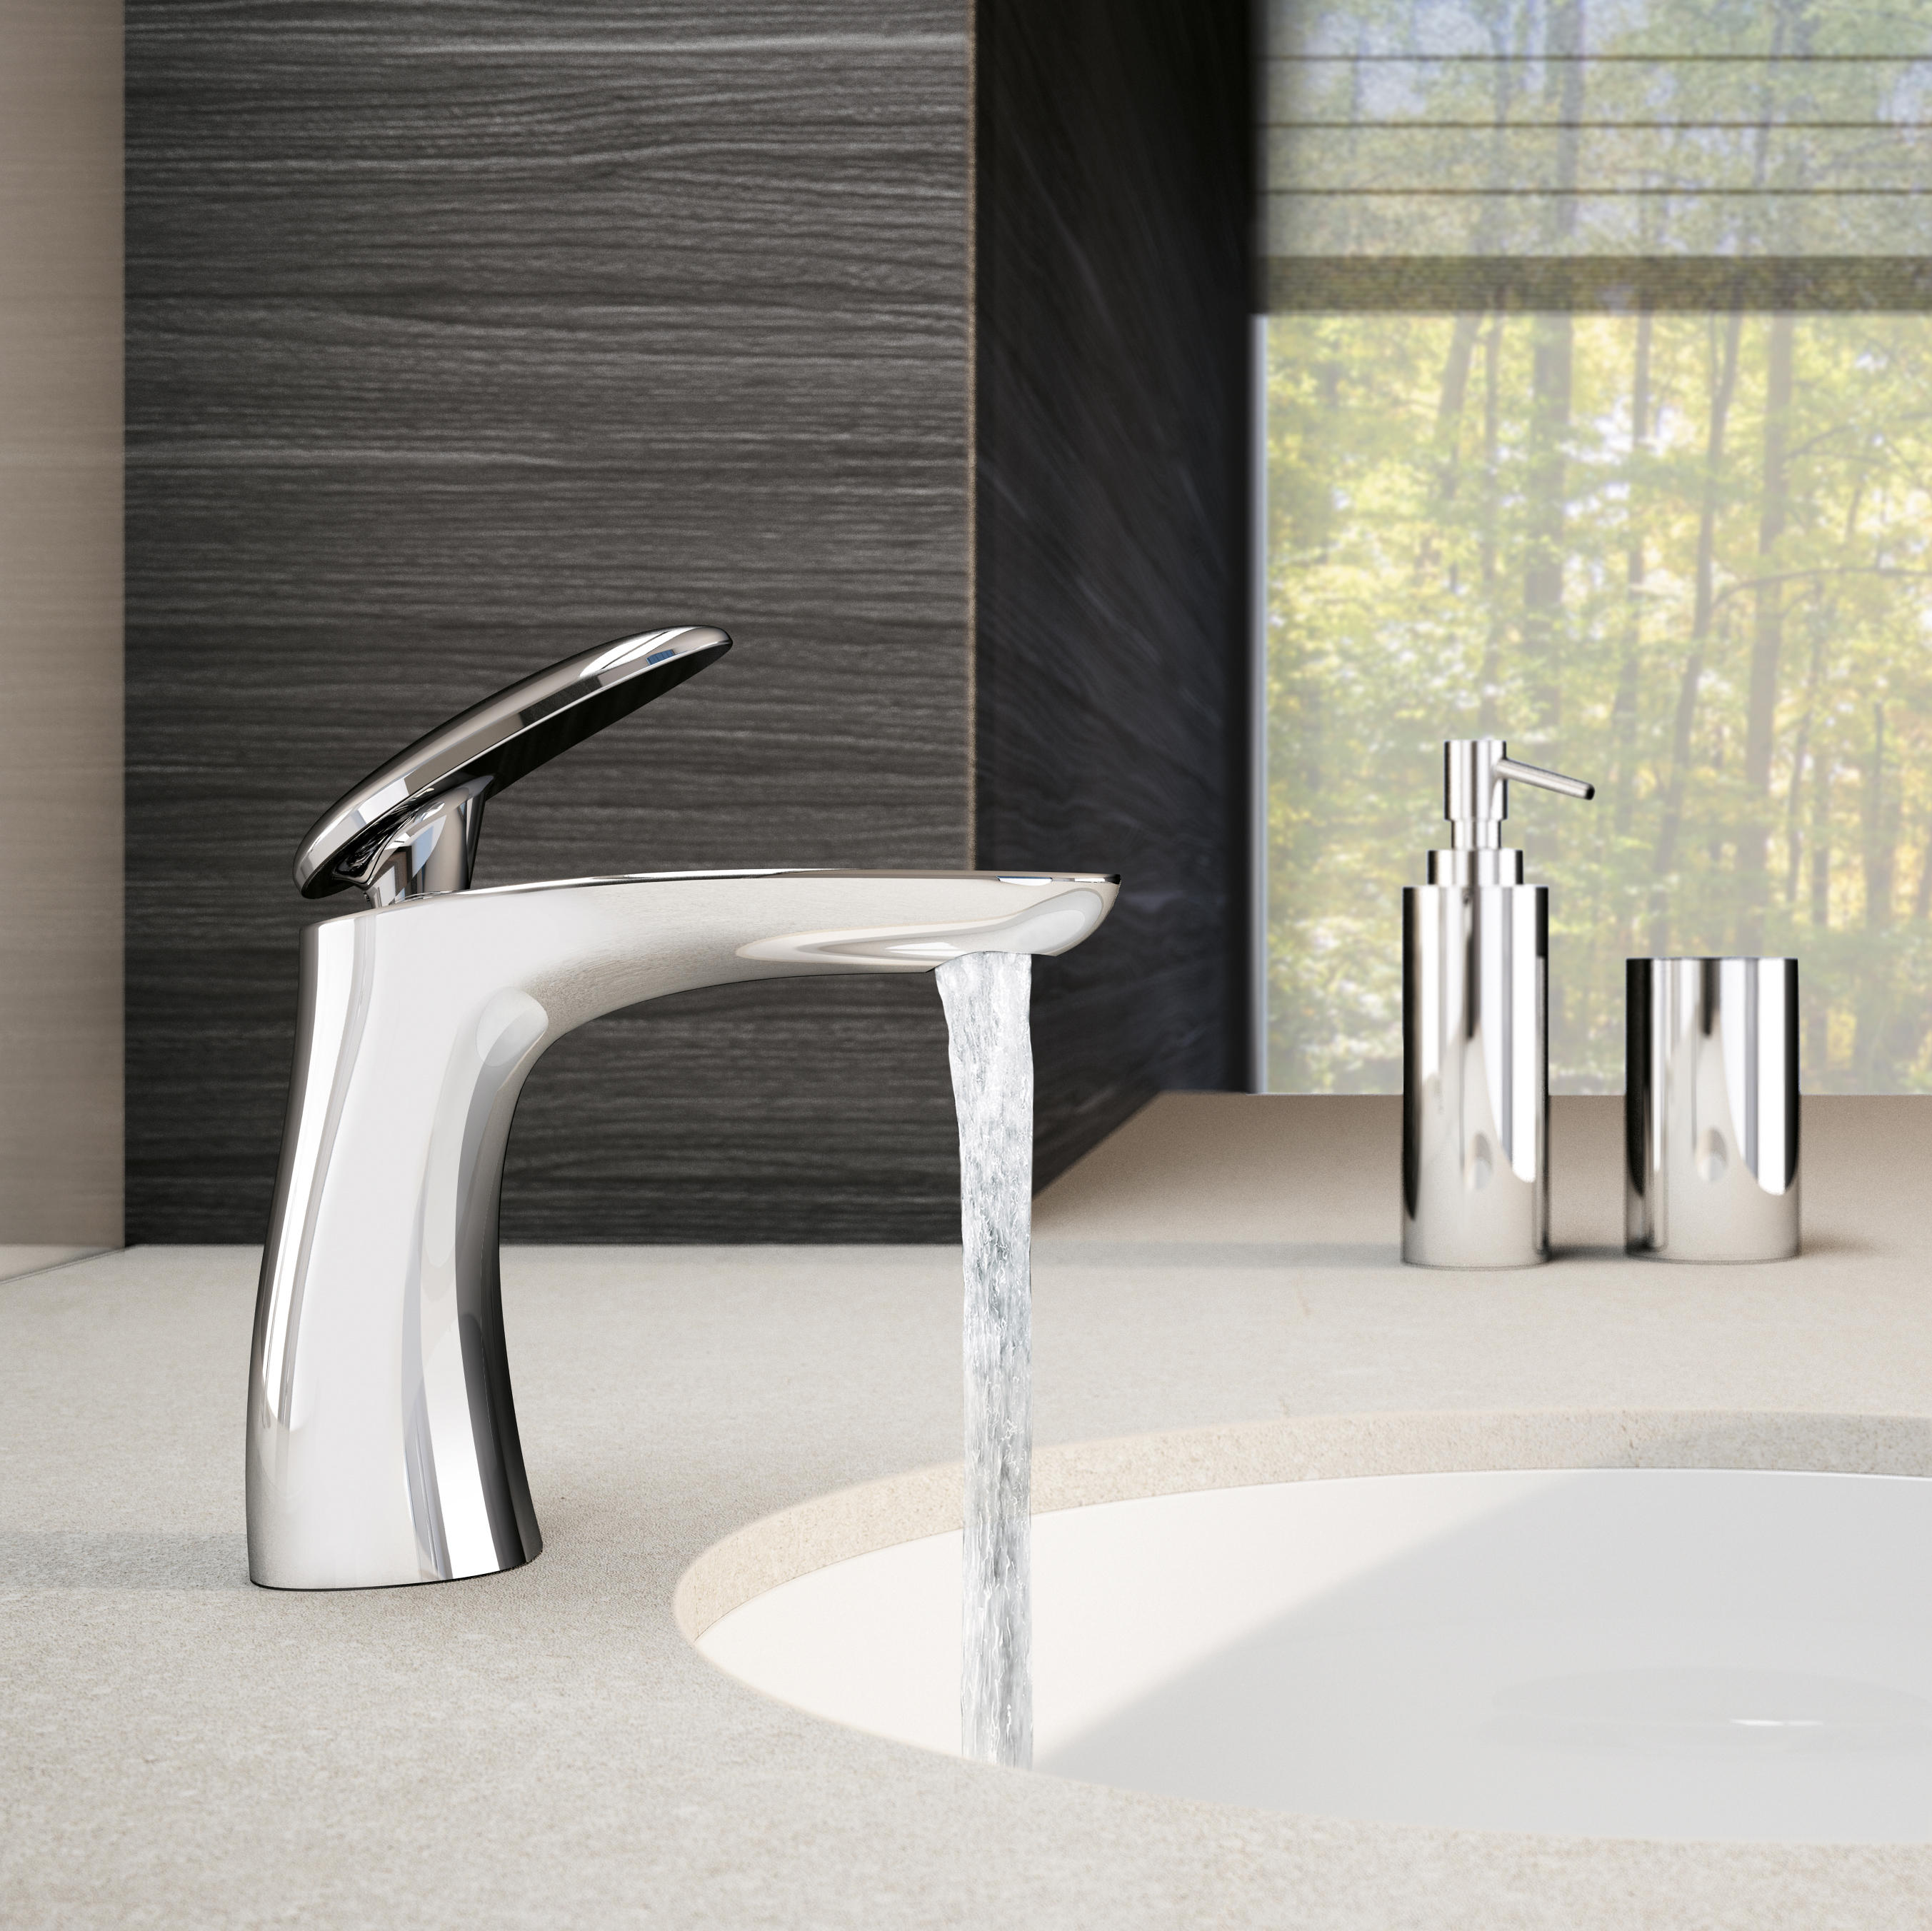 MODERN BATHROOM ACCESSORIES - Soap holders / dishes from Fir ...